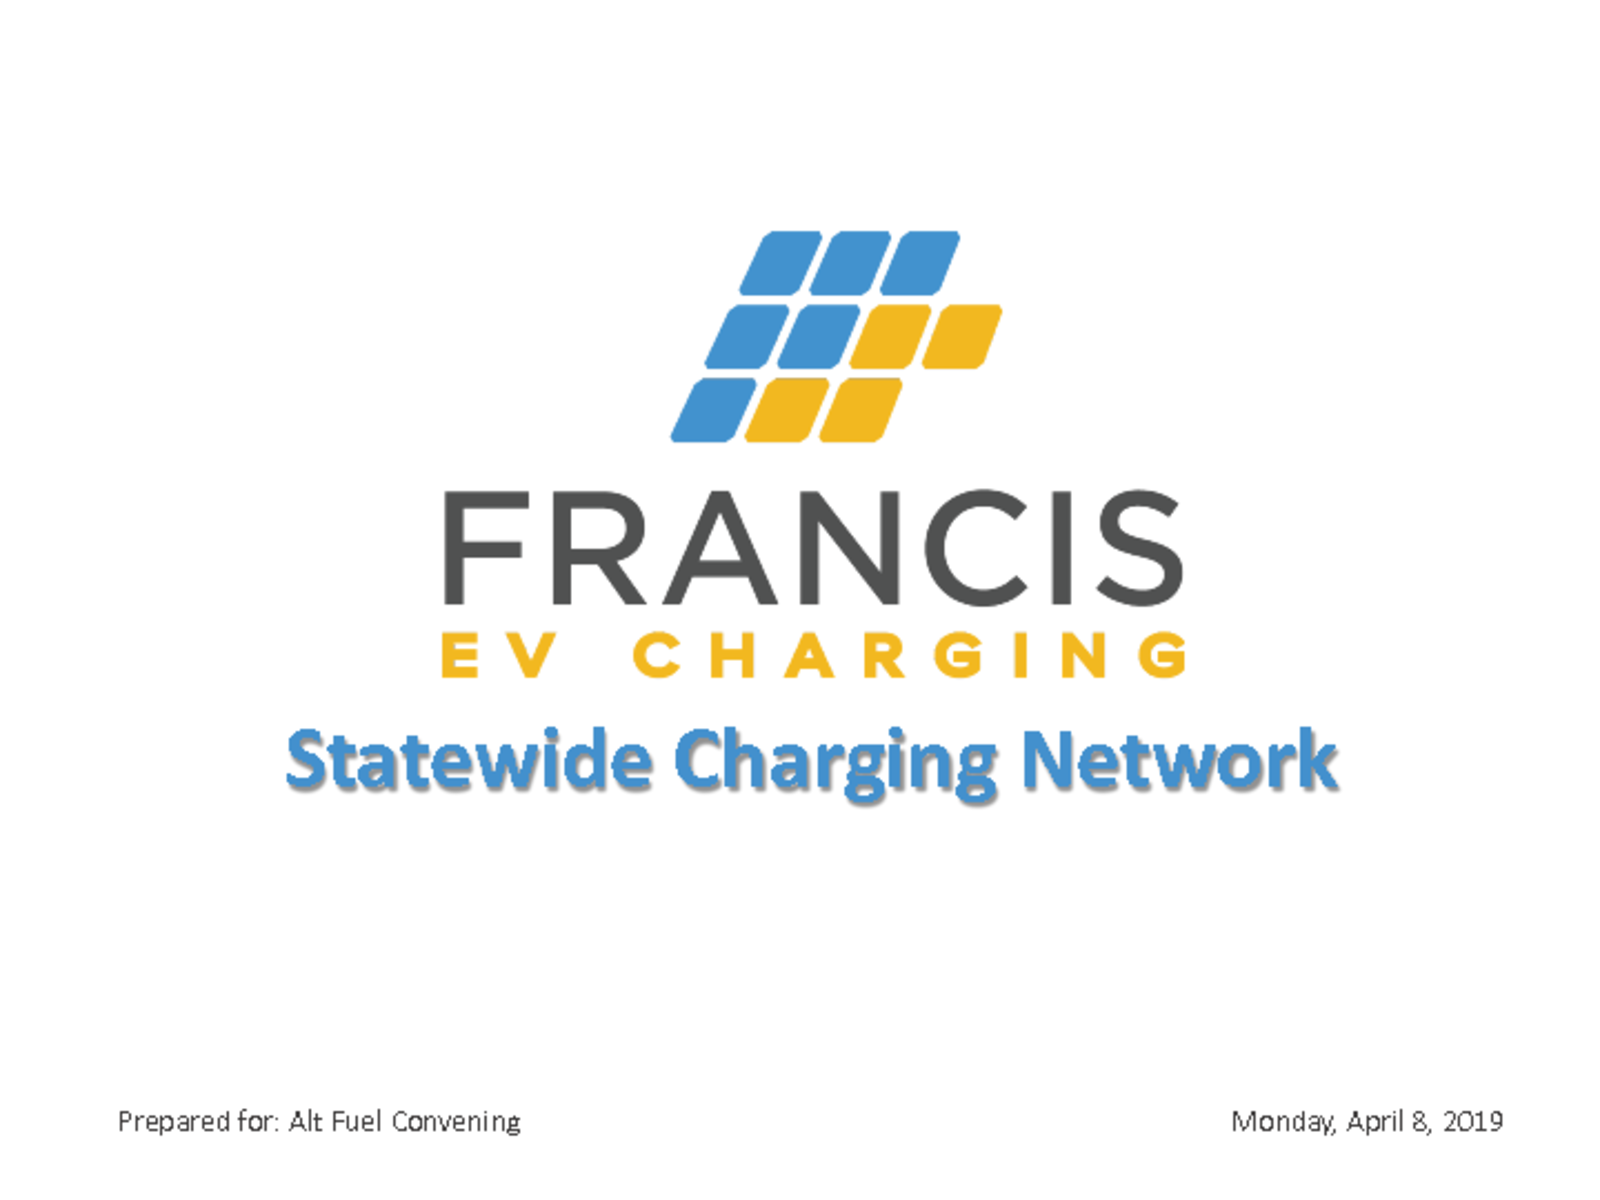 thumbnail of Seth Christ_Statewide Charging Network 4.5.19